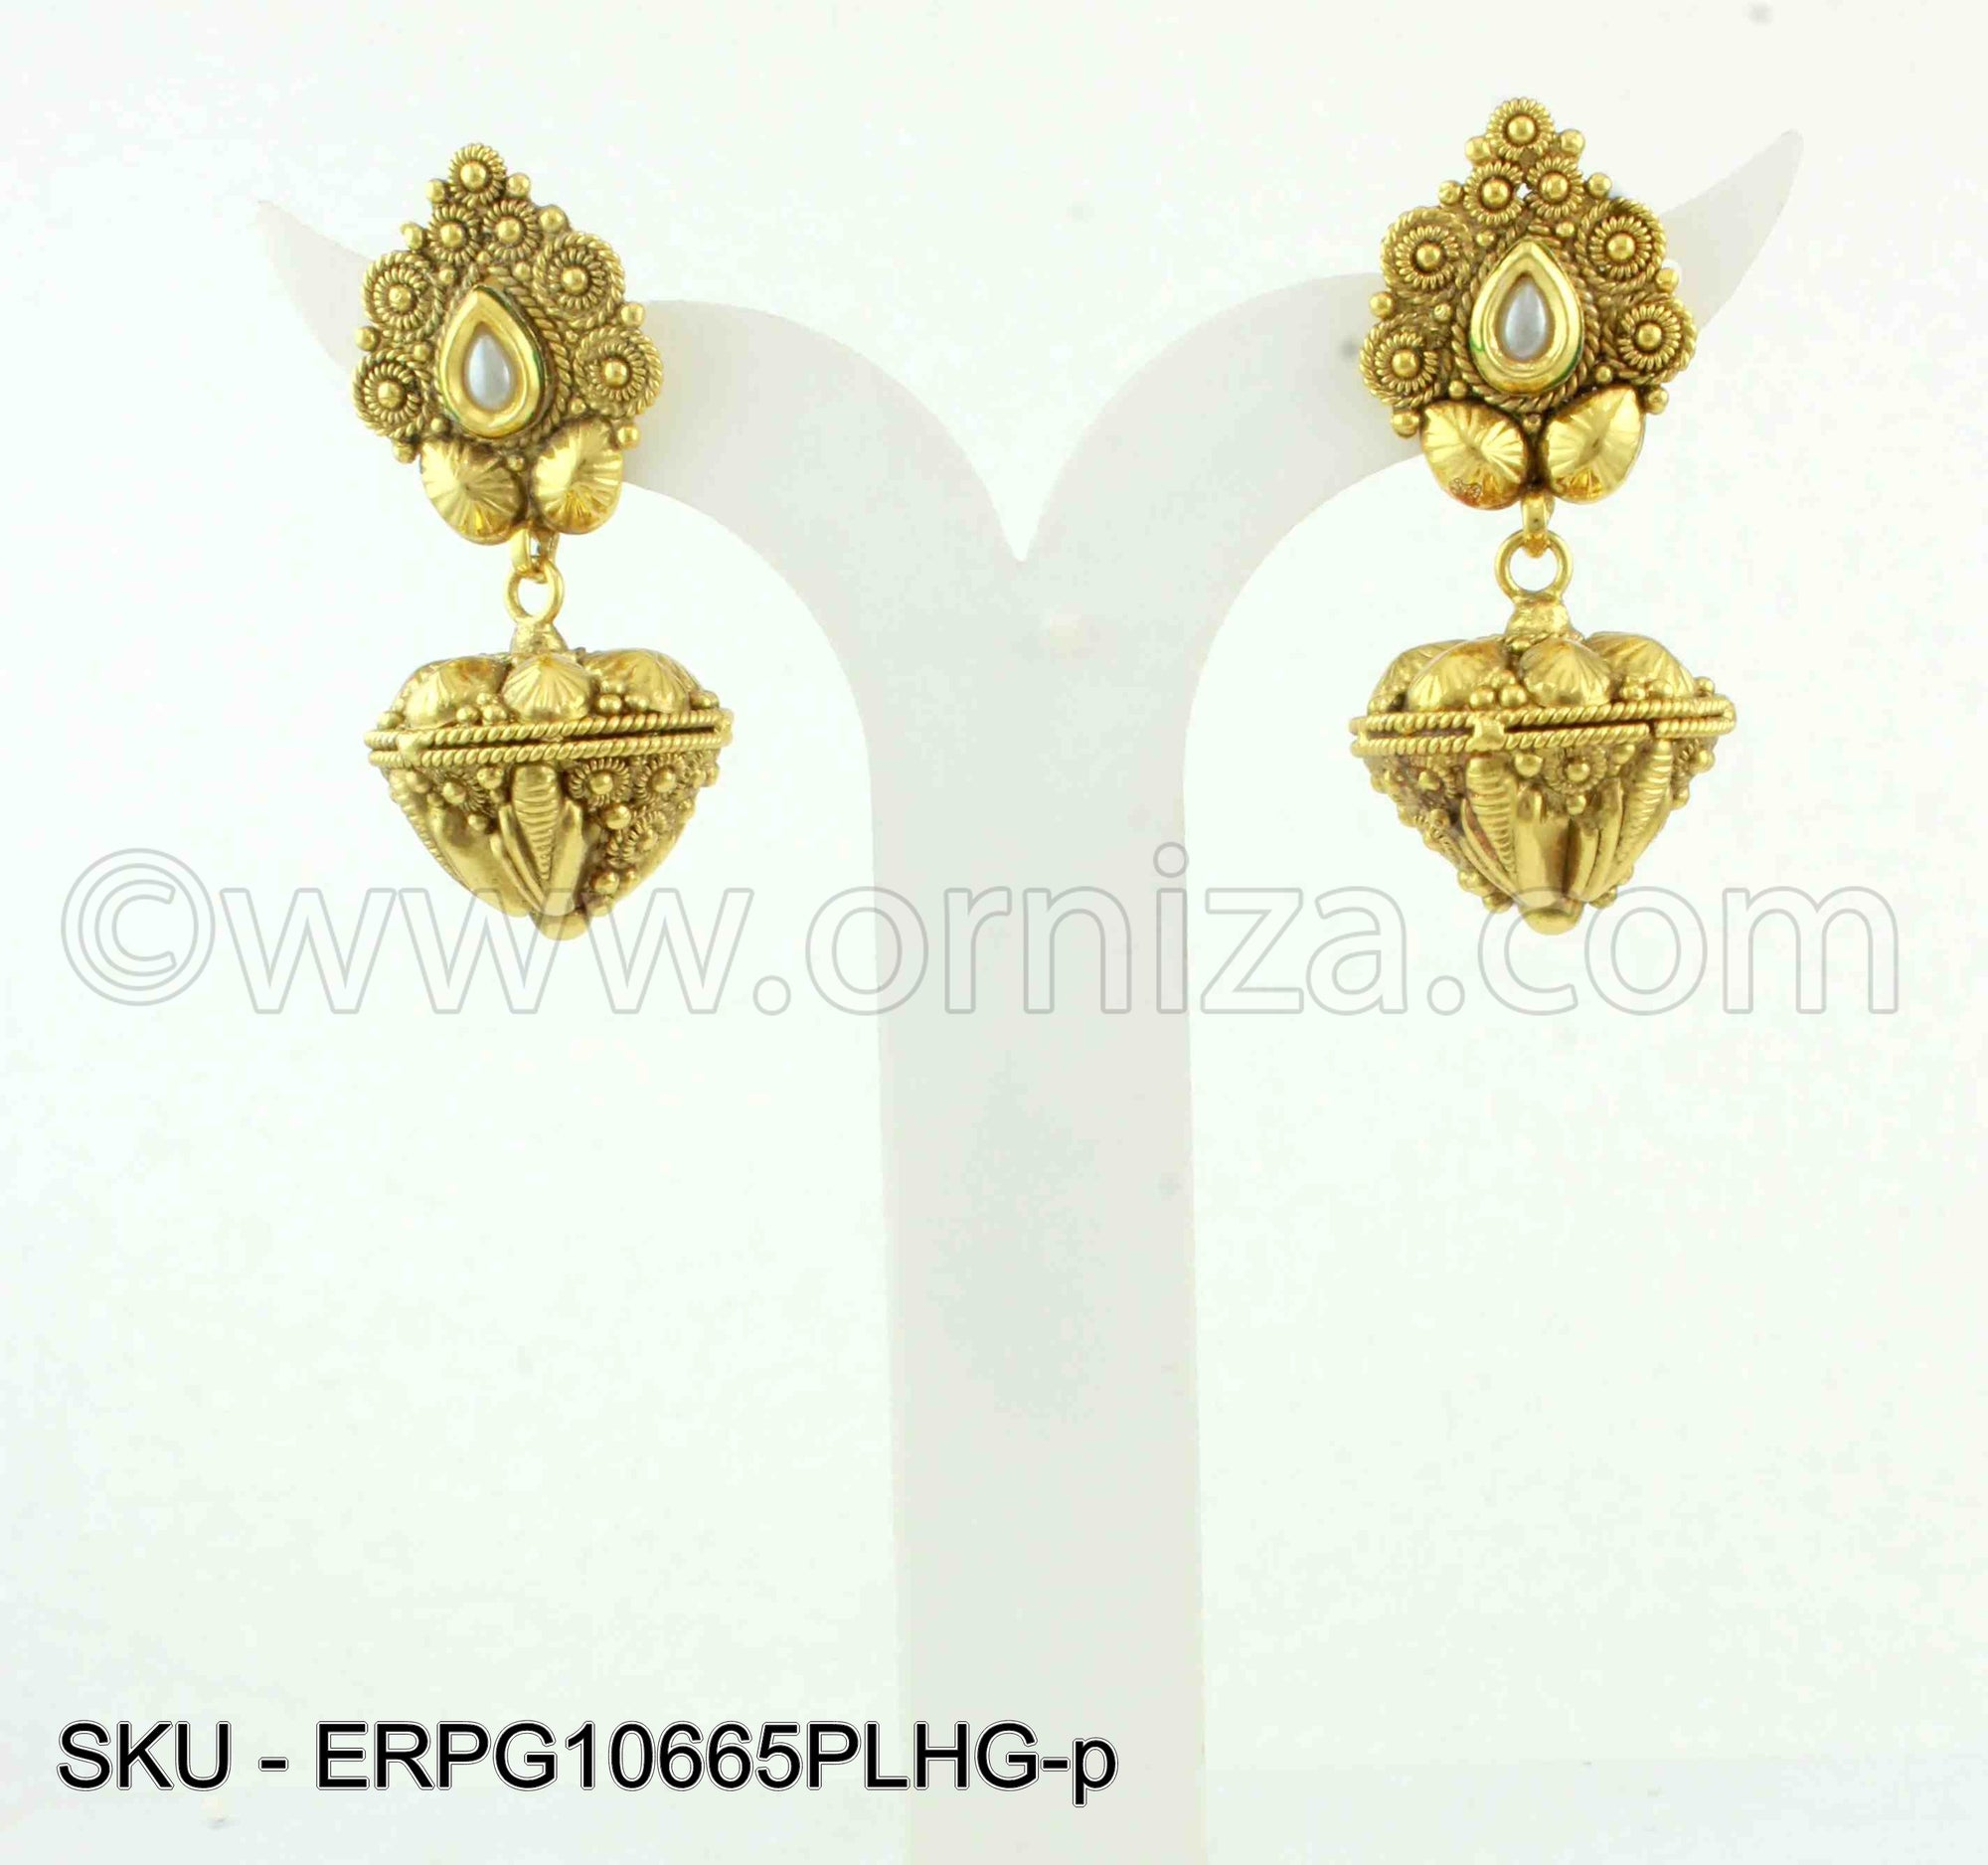 Pearl White Golden Earrings